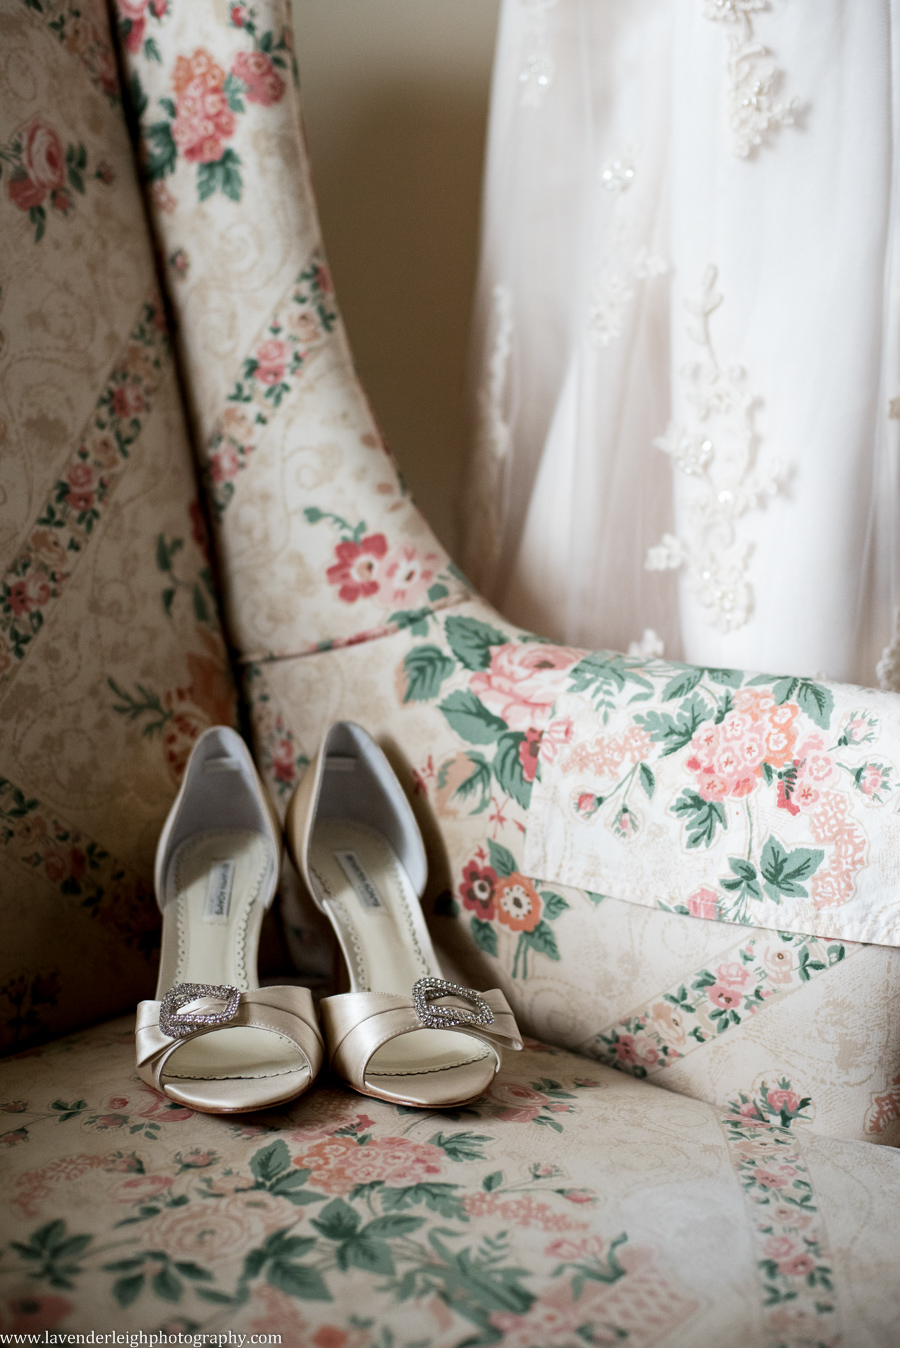 Wedding Shoes | Rhinestones | Ivory| Lingrow Farms | Barn Wedding | Farmhouse Getting Ready Pictures |  Pittsburgh Wedding Photographer | Pittsburgh Wedding Photographers | Lavender Leigh Photography | Blog